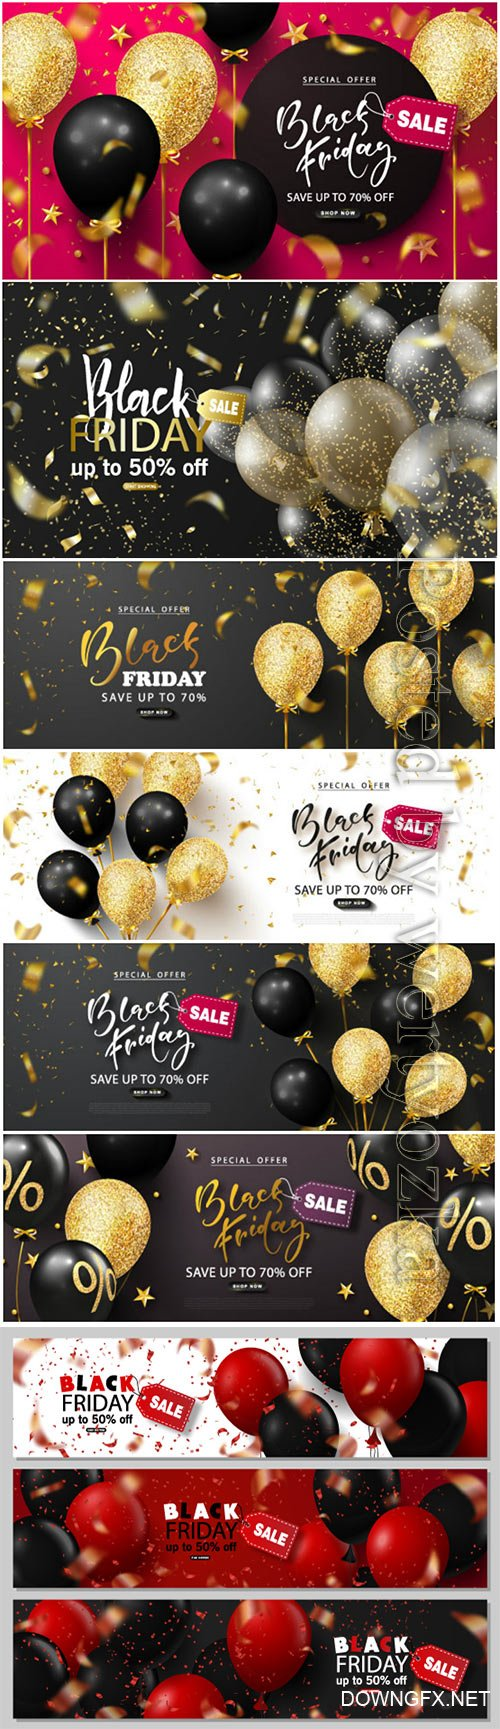 Black friday sale background with beautiful balloons and flying serpentine